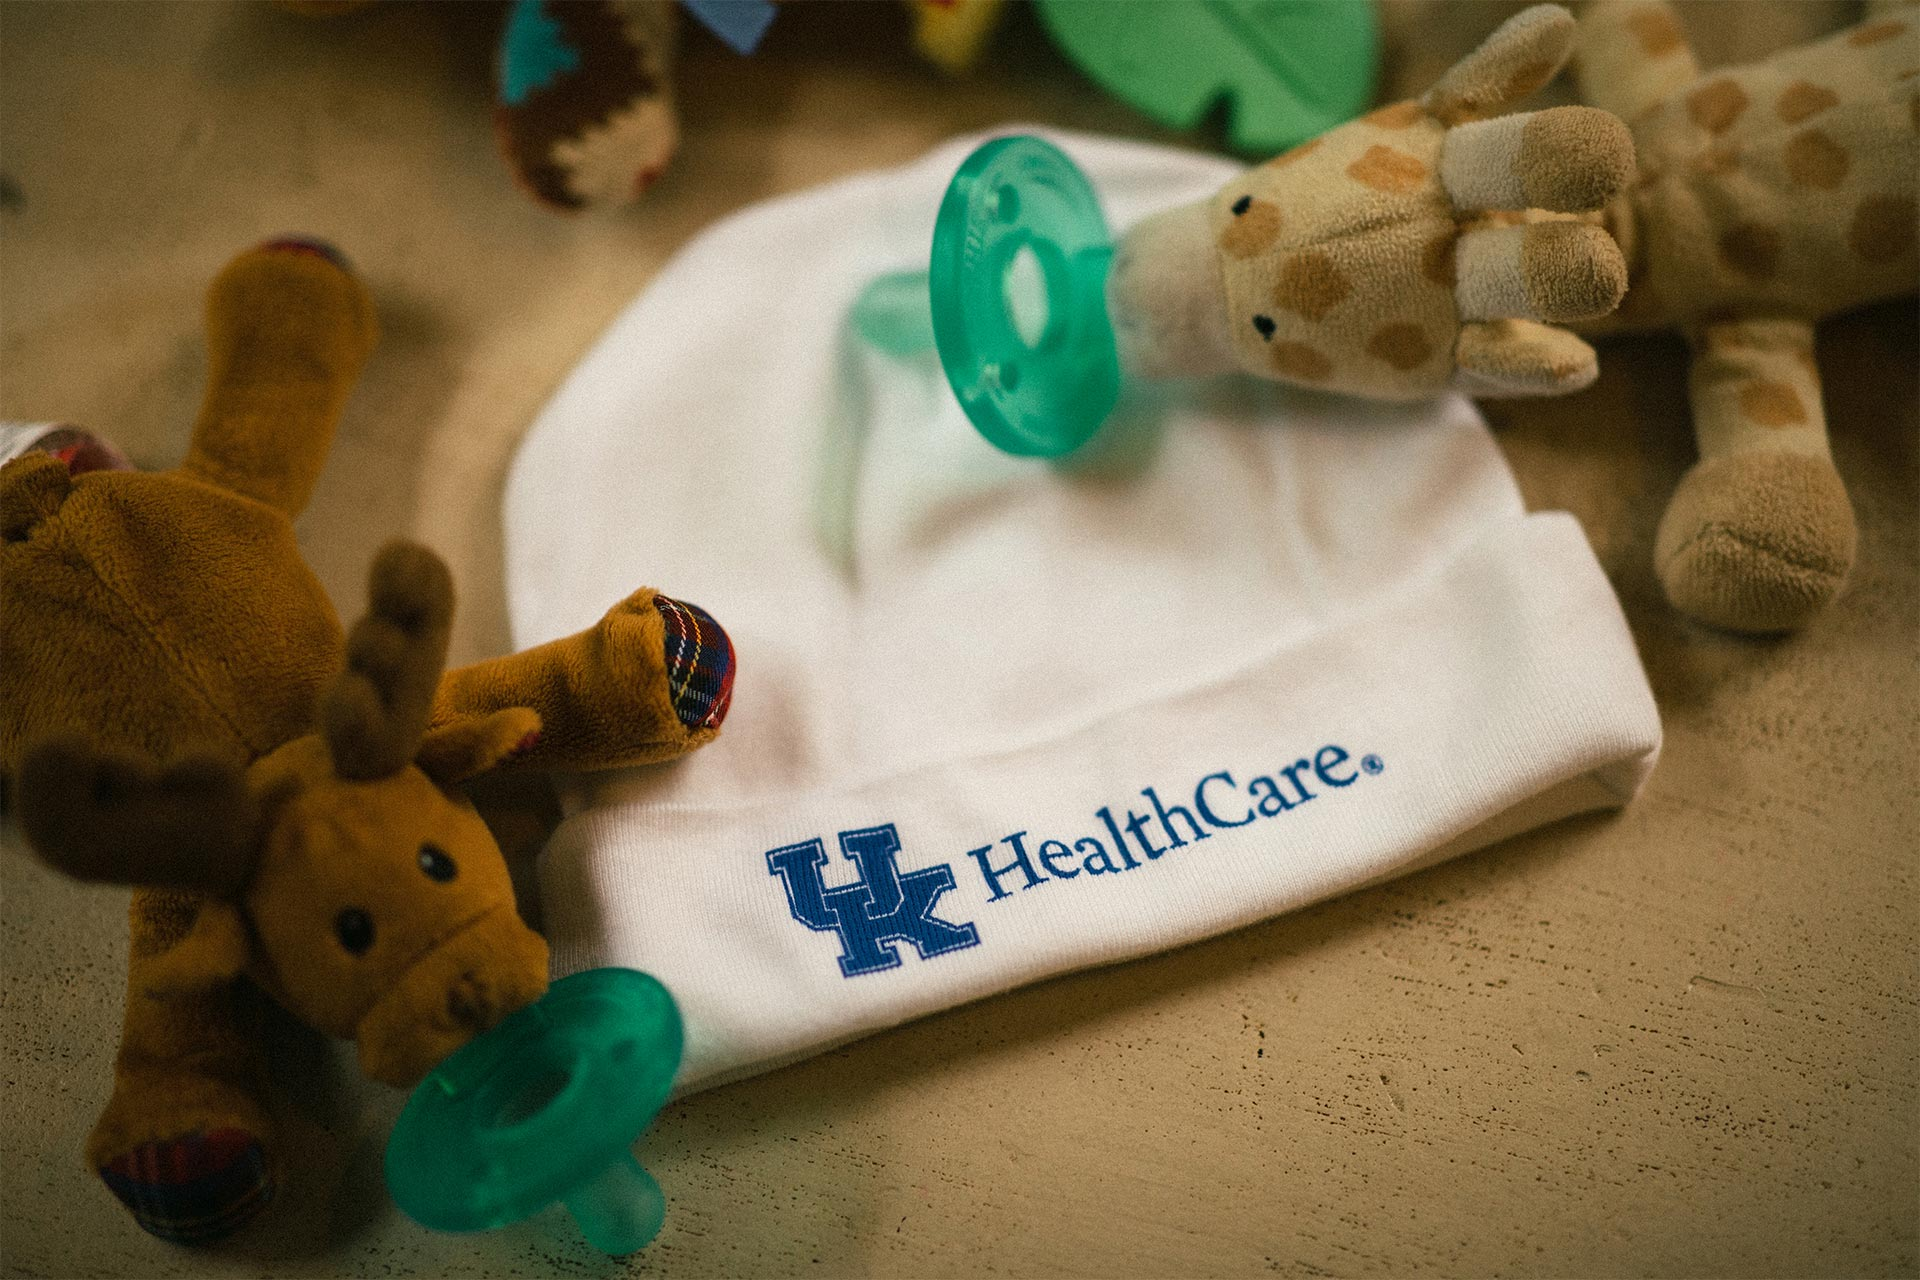 University of Kentucky HealthCare hat and children's toys